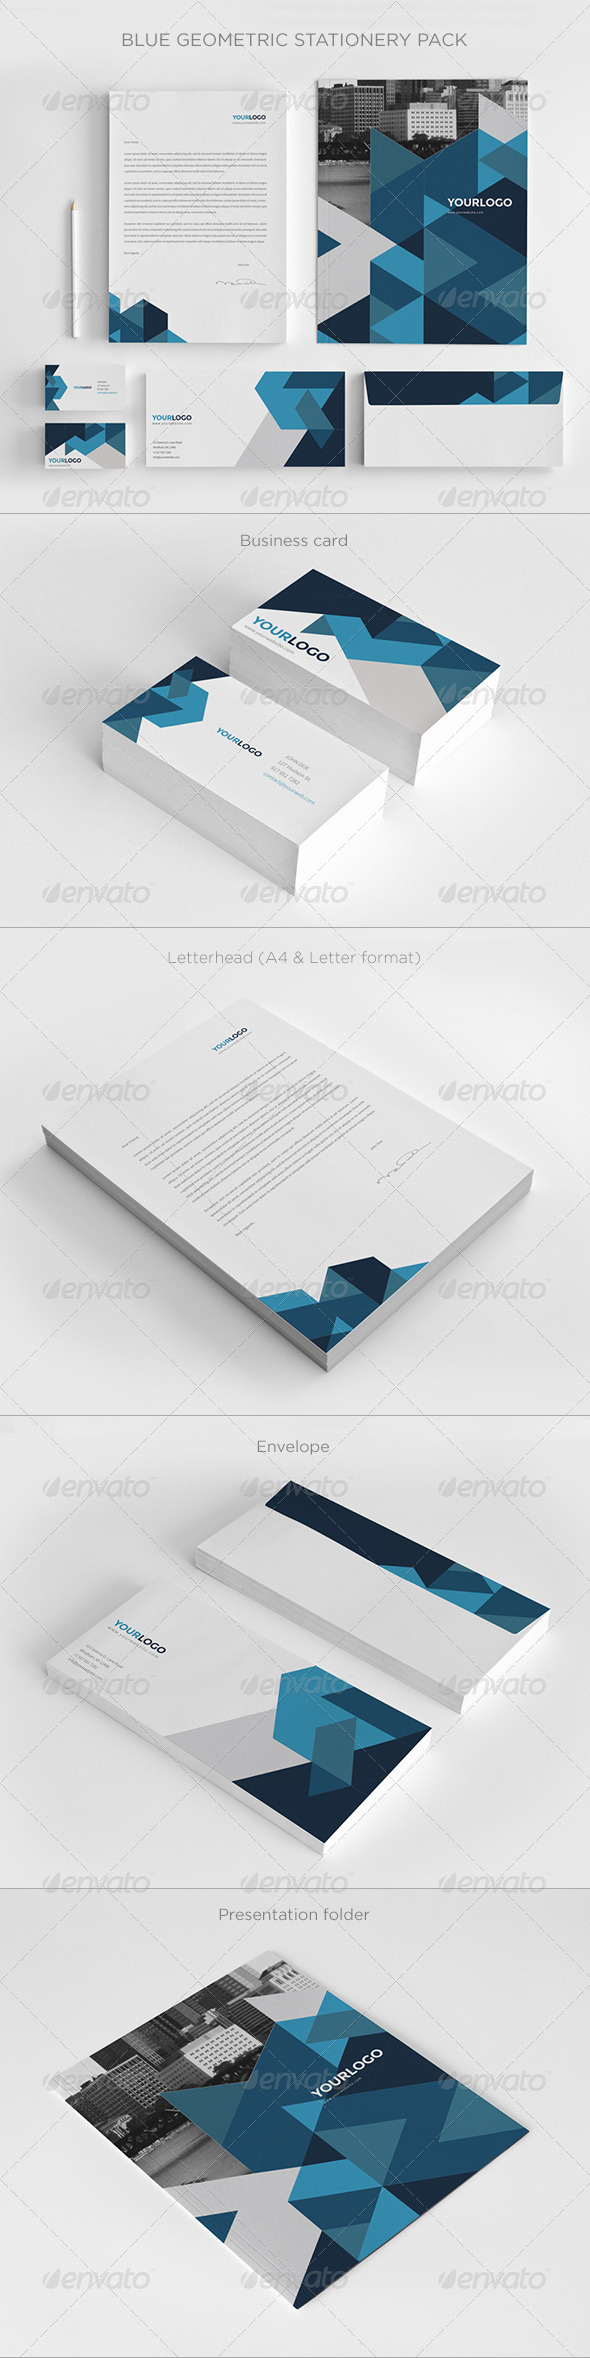 GraphicRiver Blue Geometric Stationery Pack 7396269